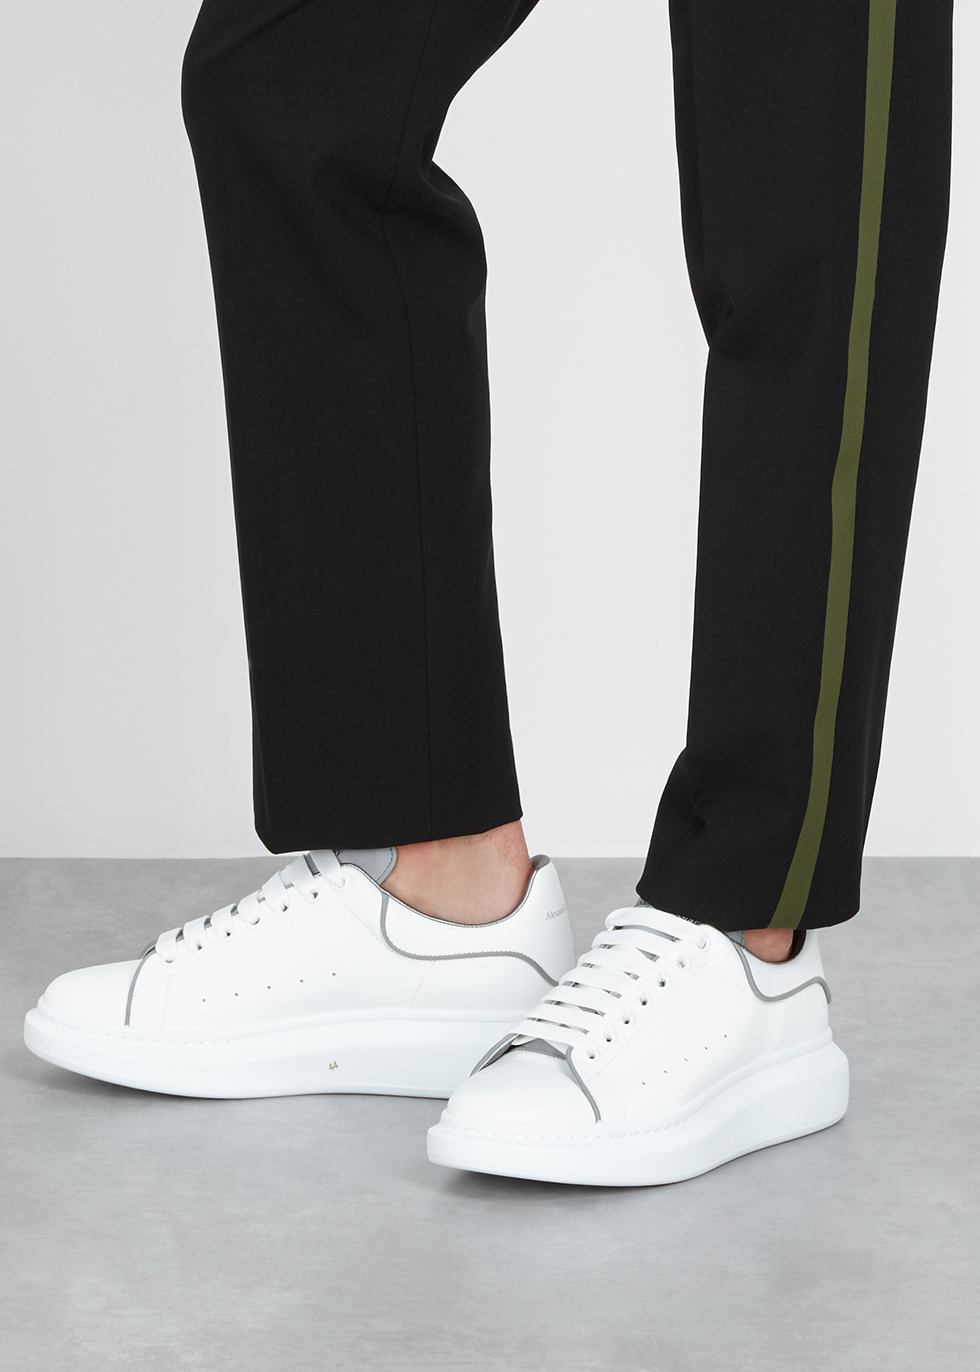 a1b310a15586 Alexander McQueen Larry white reflective leather trainers - Harvey Nichols